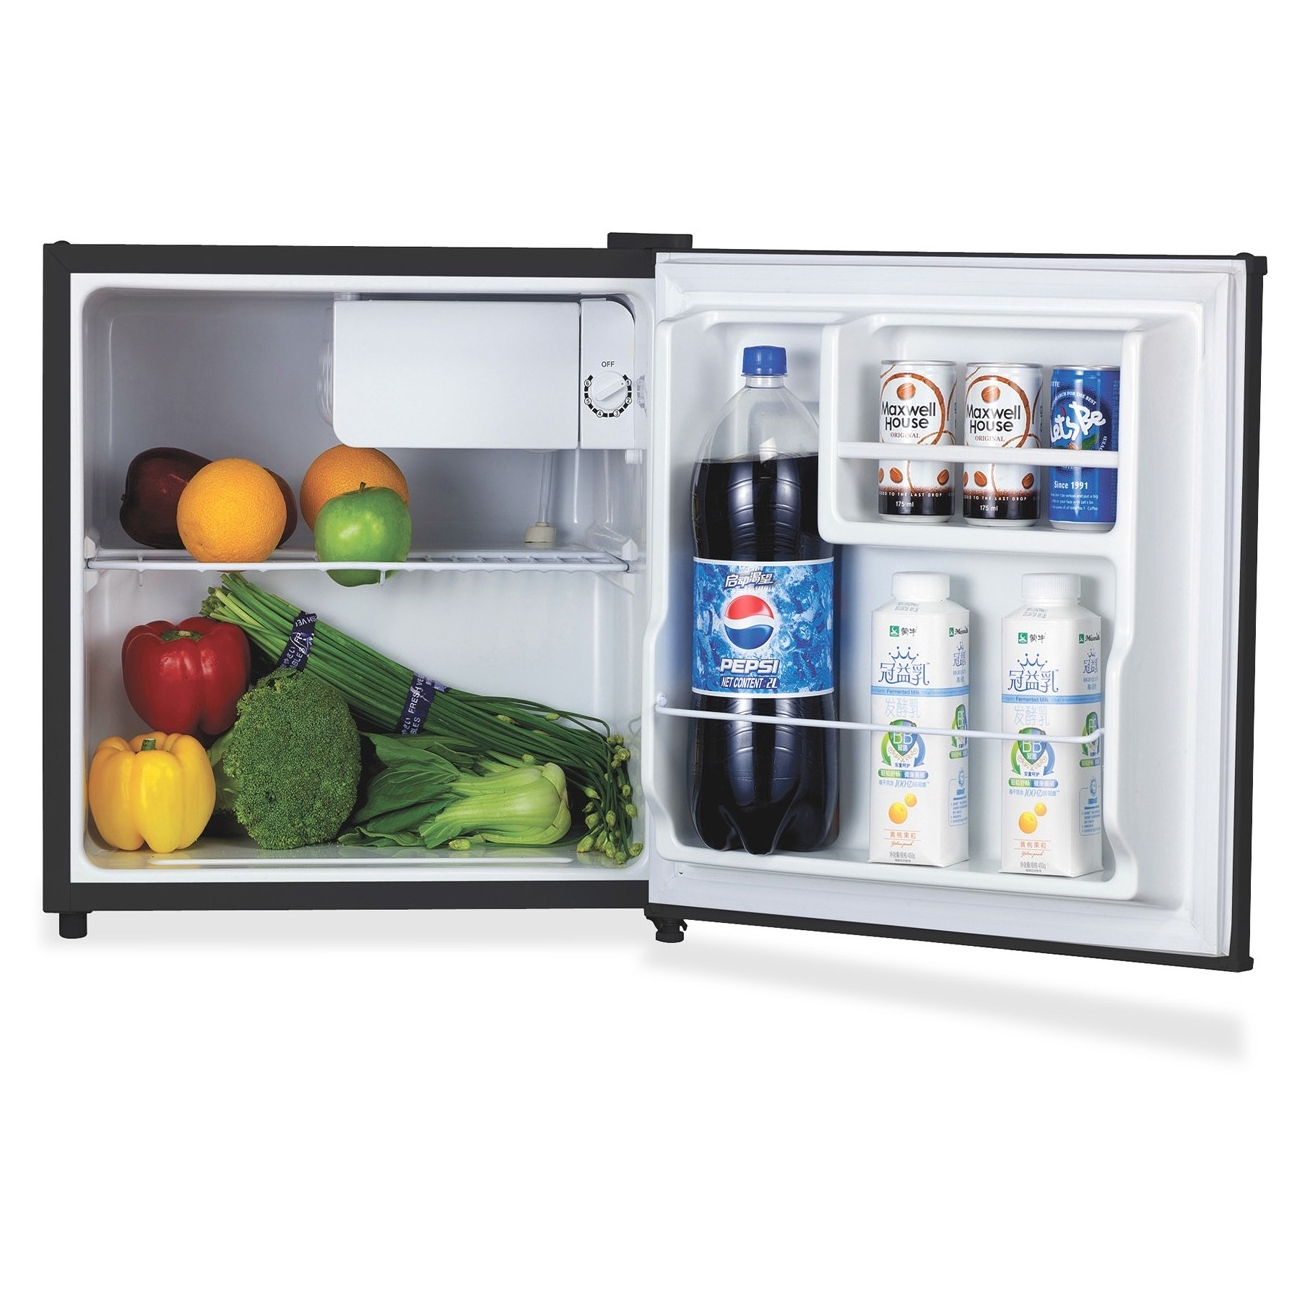 tiny refrigerator office. Compact Refrigerator Mini Small Fridge Home Office Beverage Cooler Shelf New Tiny E